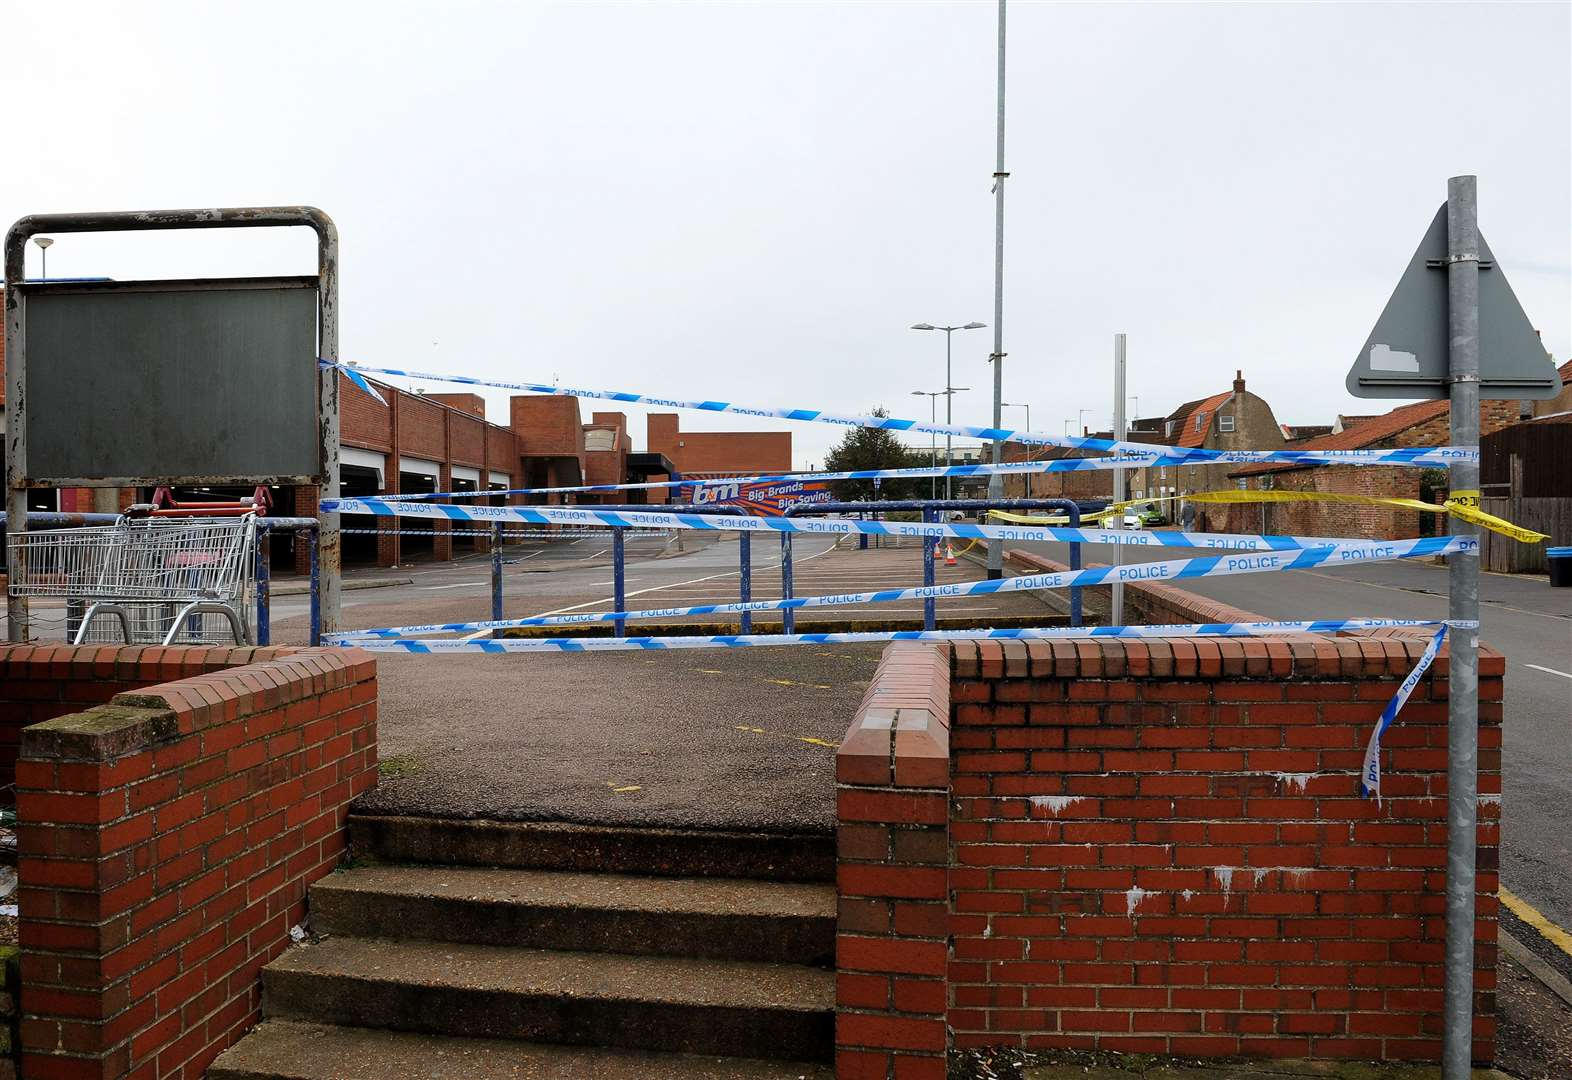 Man bailed following early hours King's Lynn attack